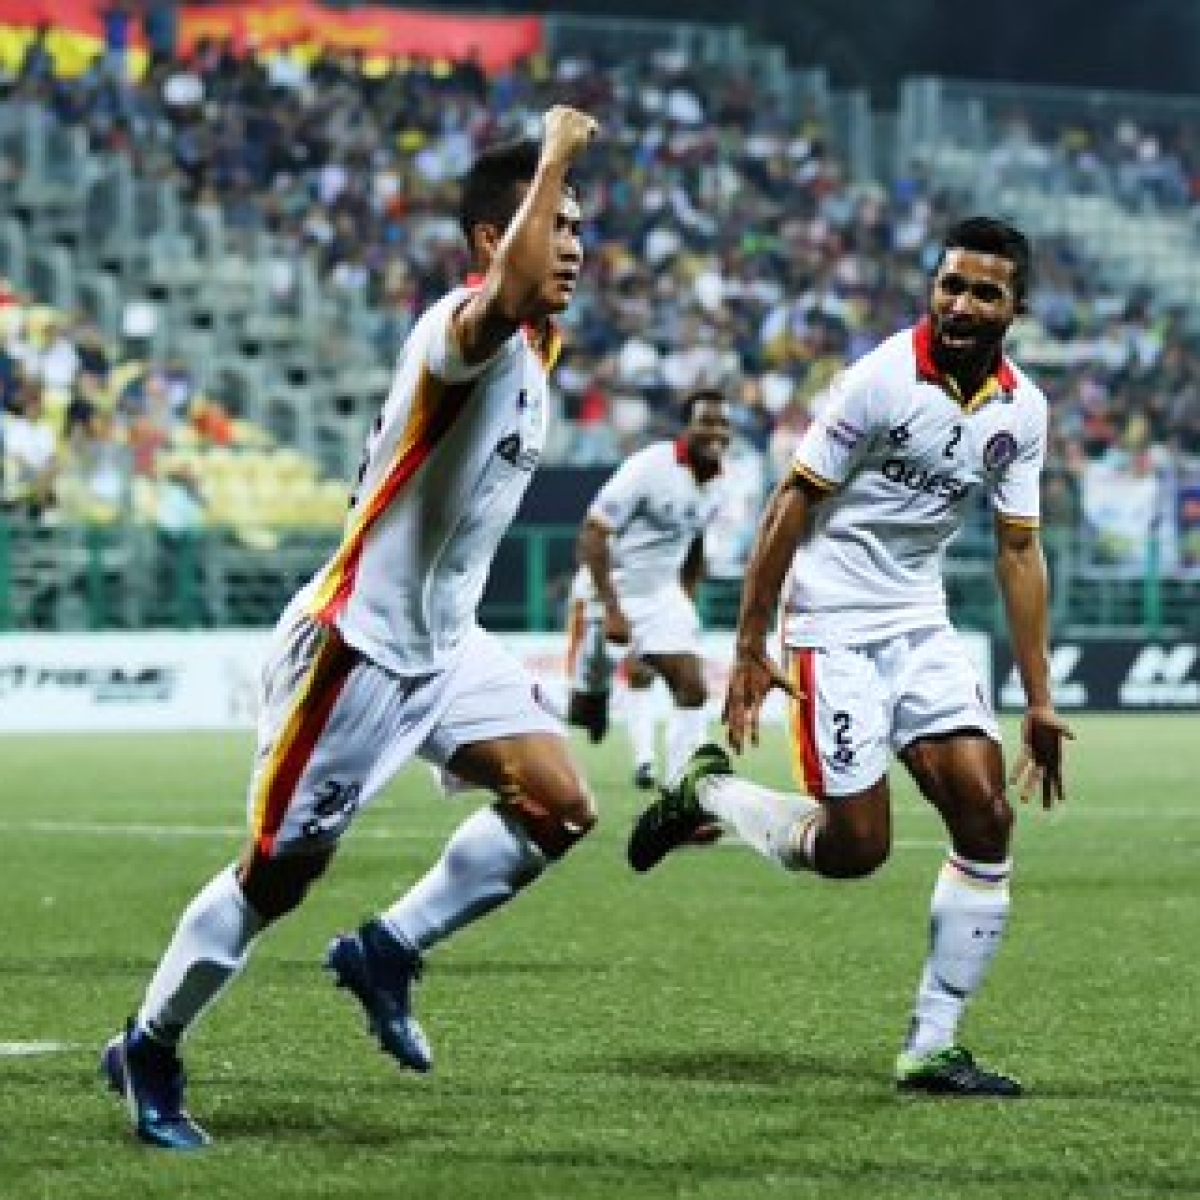 AIFF to implement 3 + 1 foreigner rule in I-League from 2020-21 season